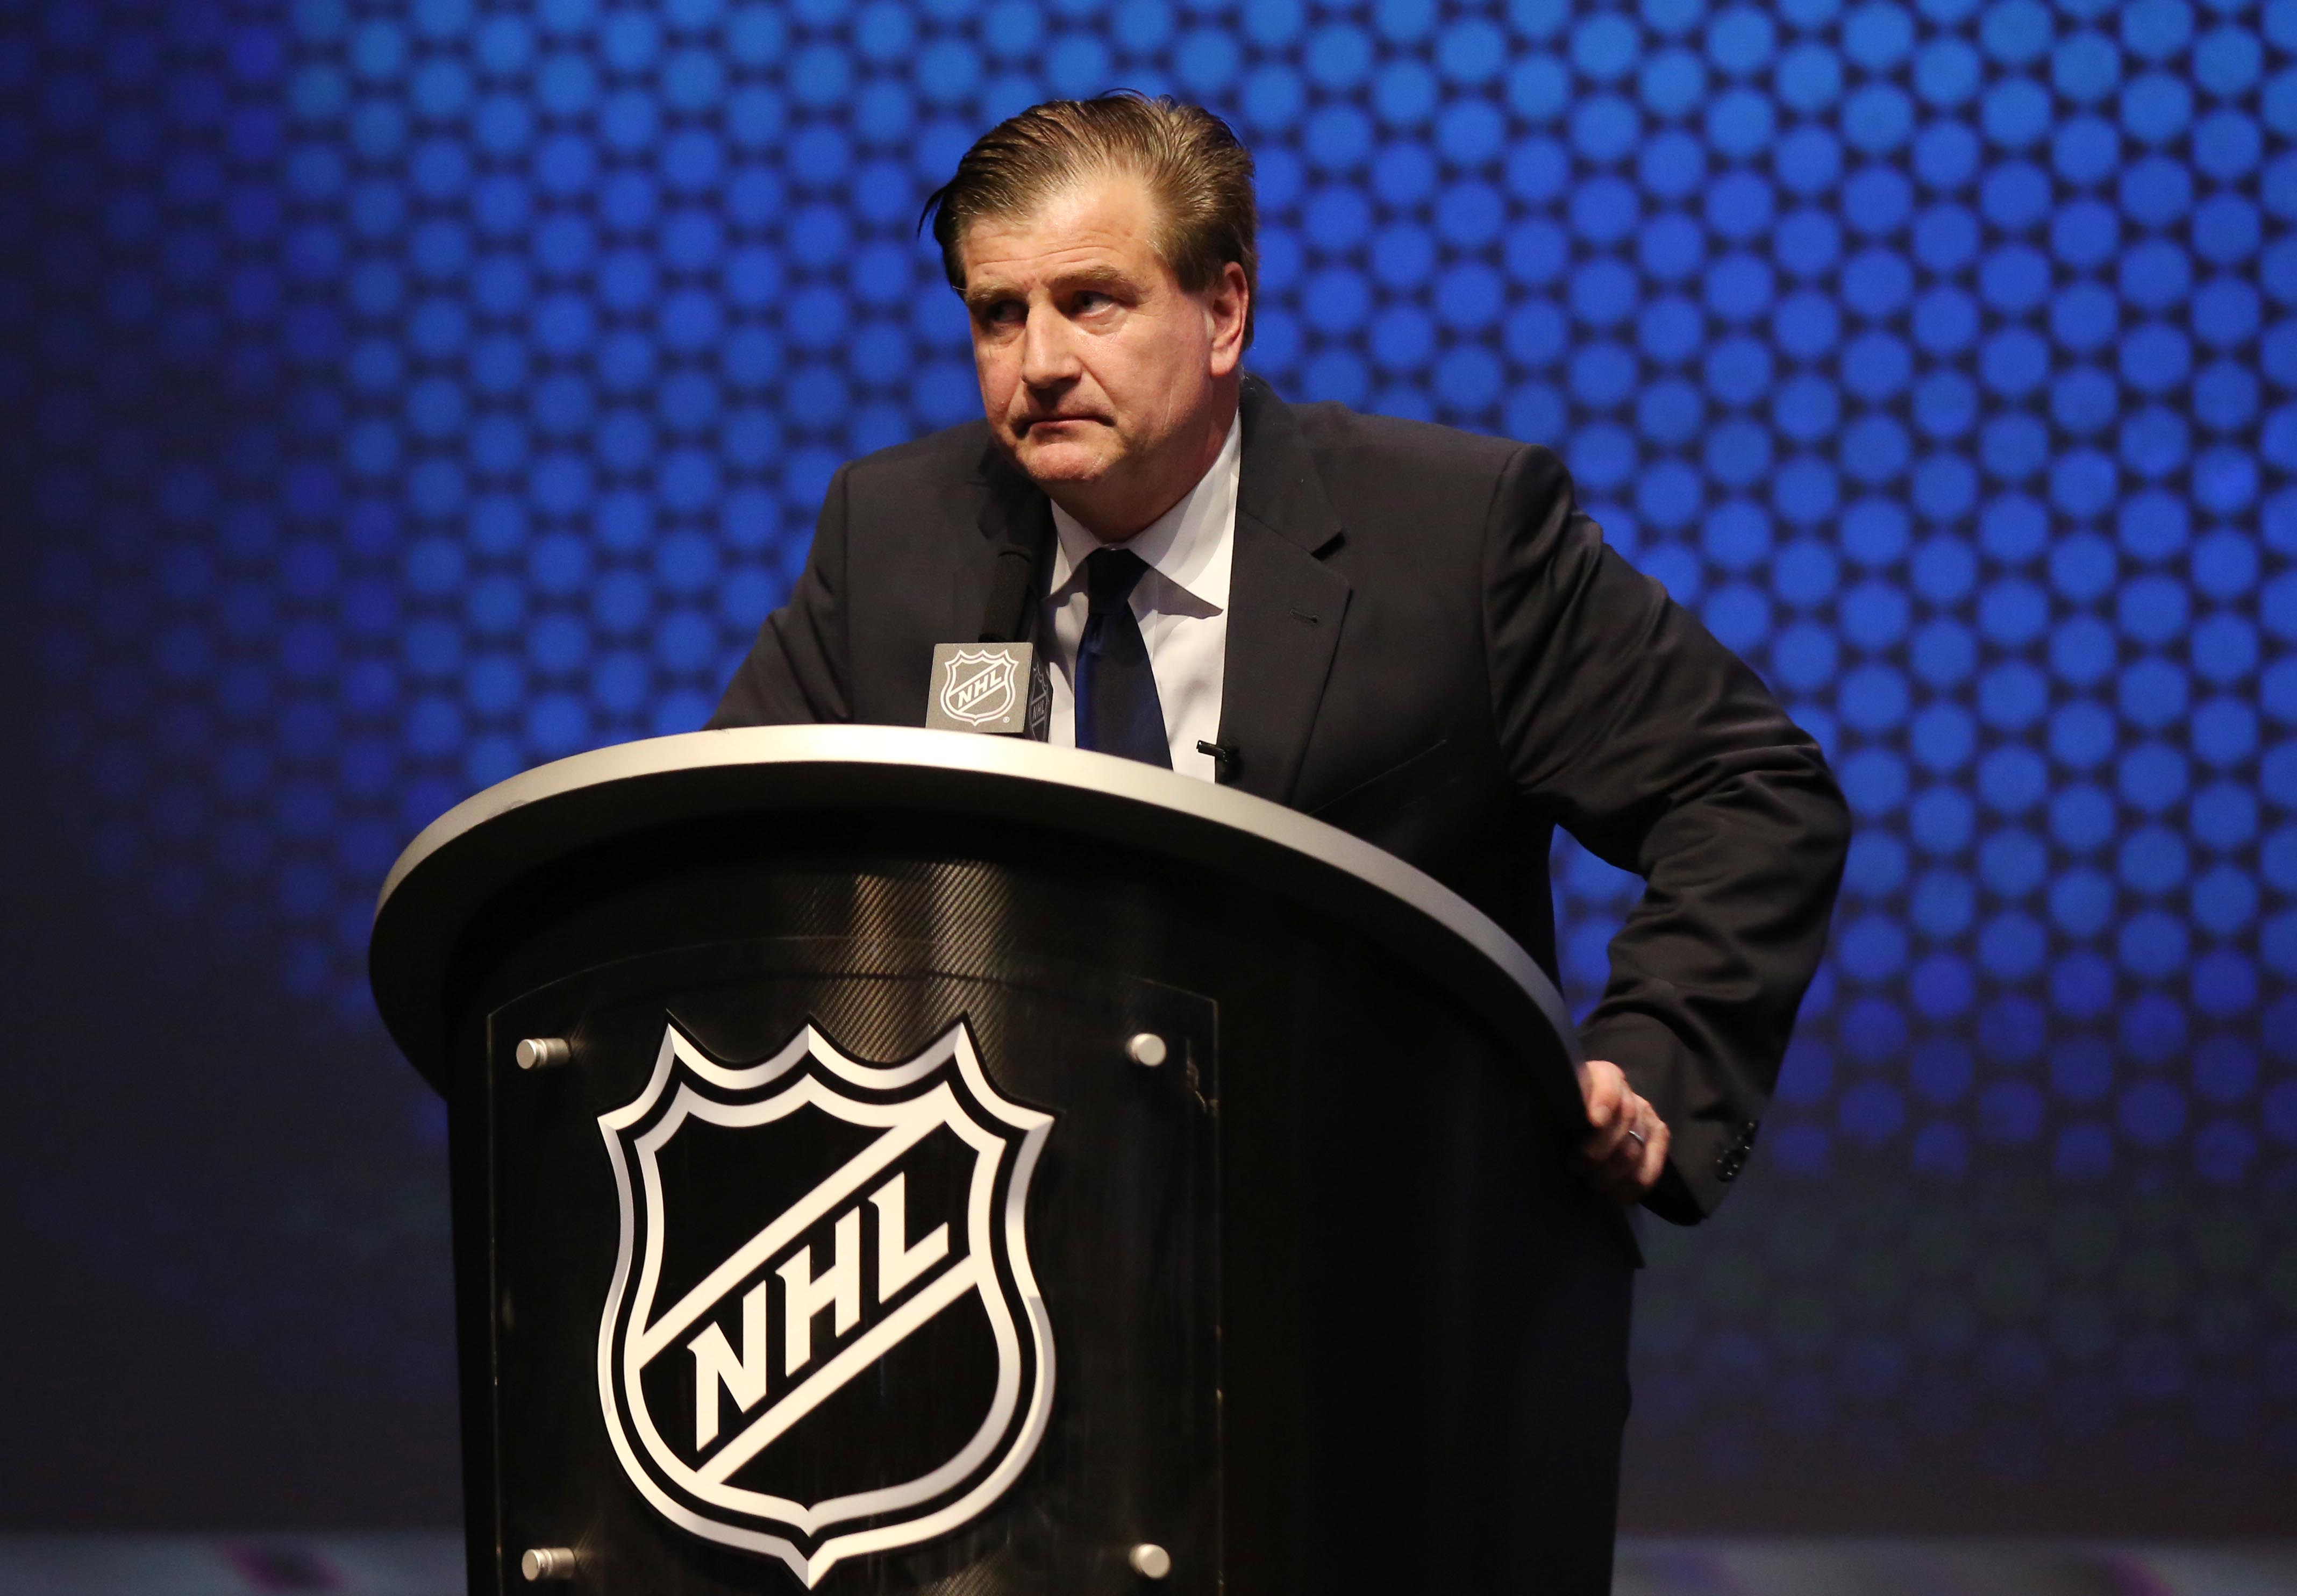 7971074-nhl-2014-nhl-draft